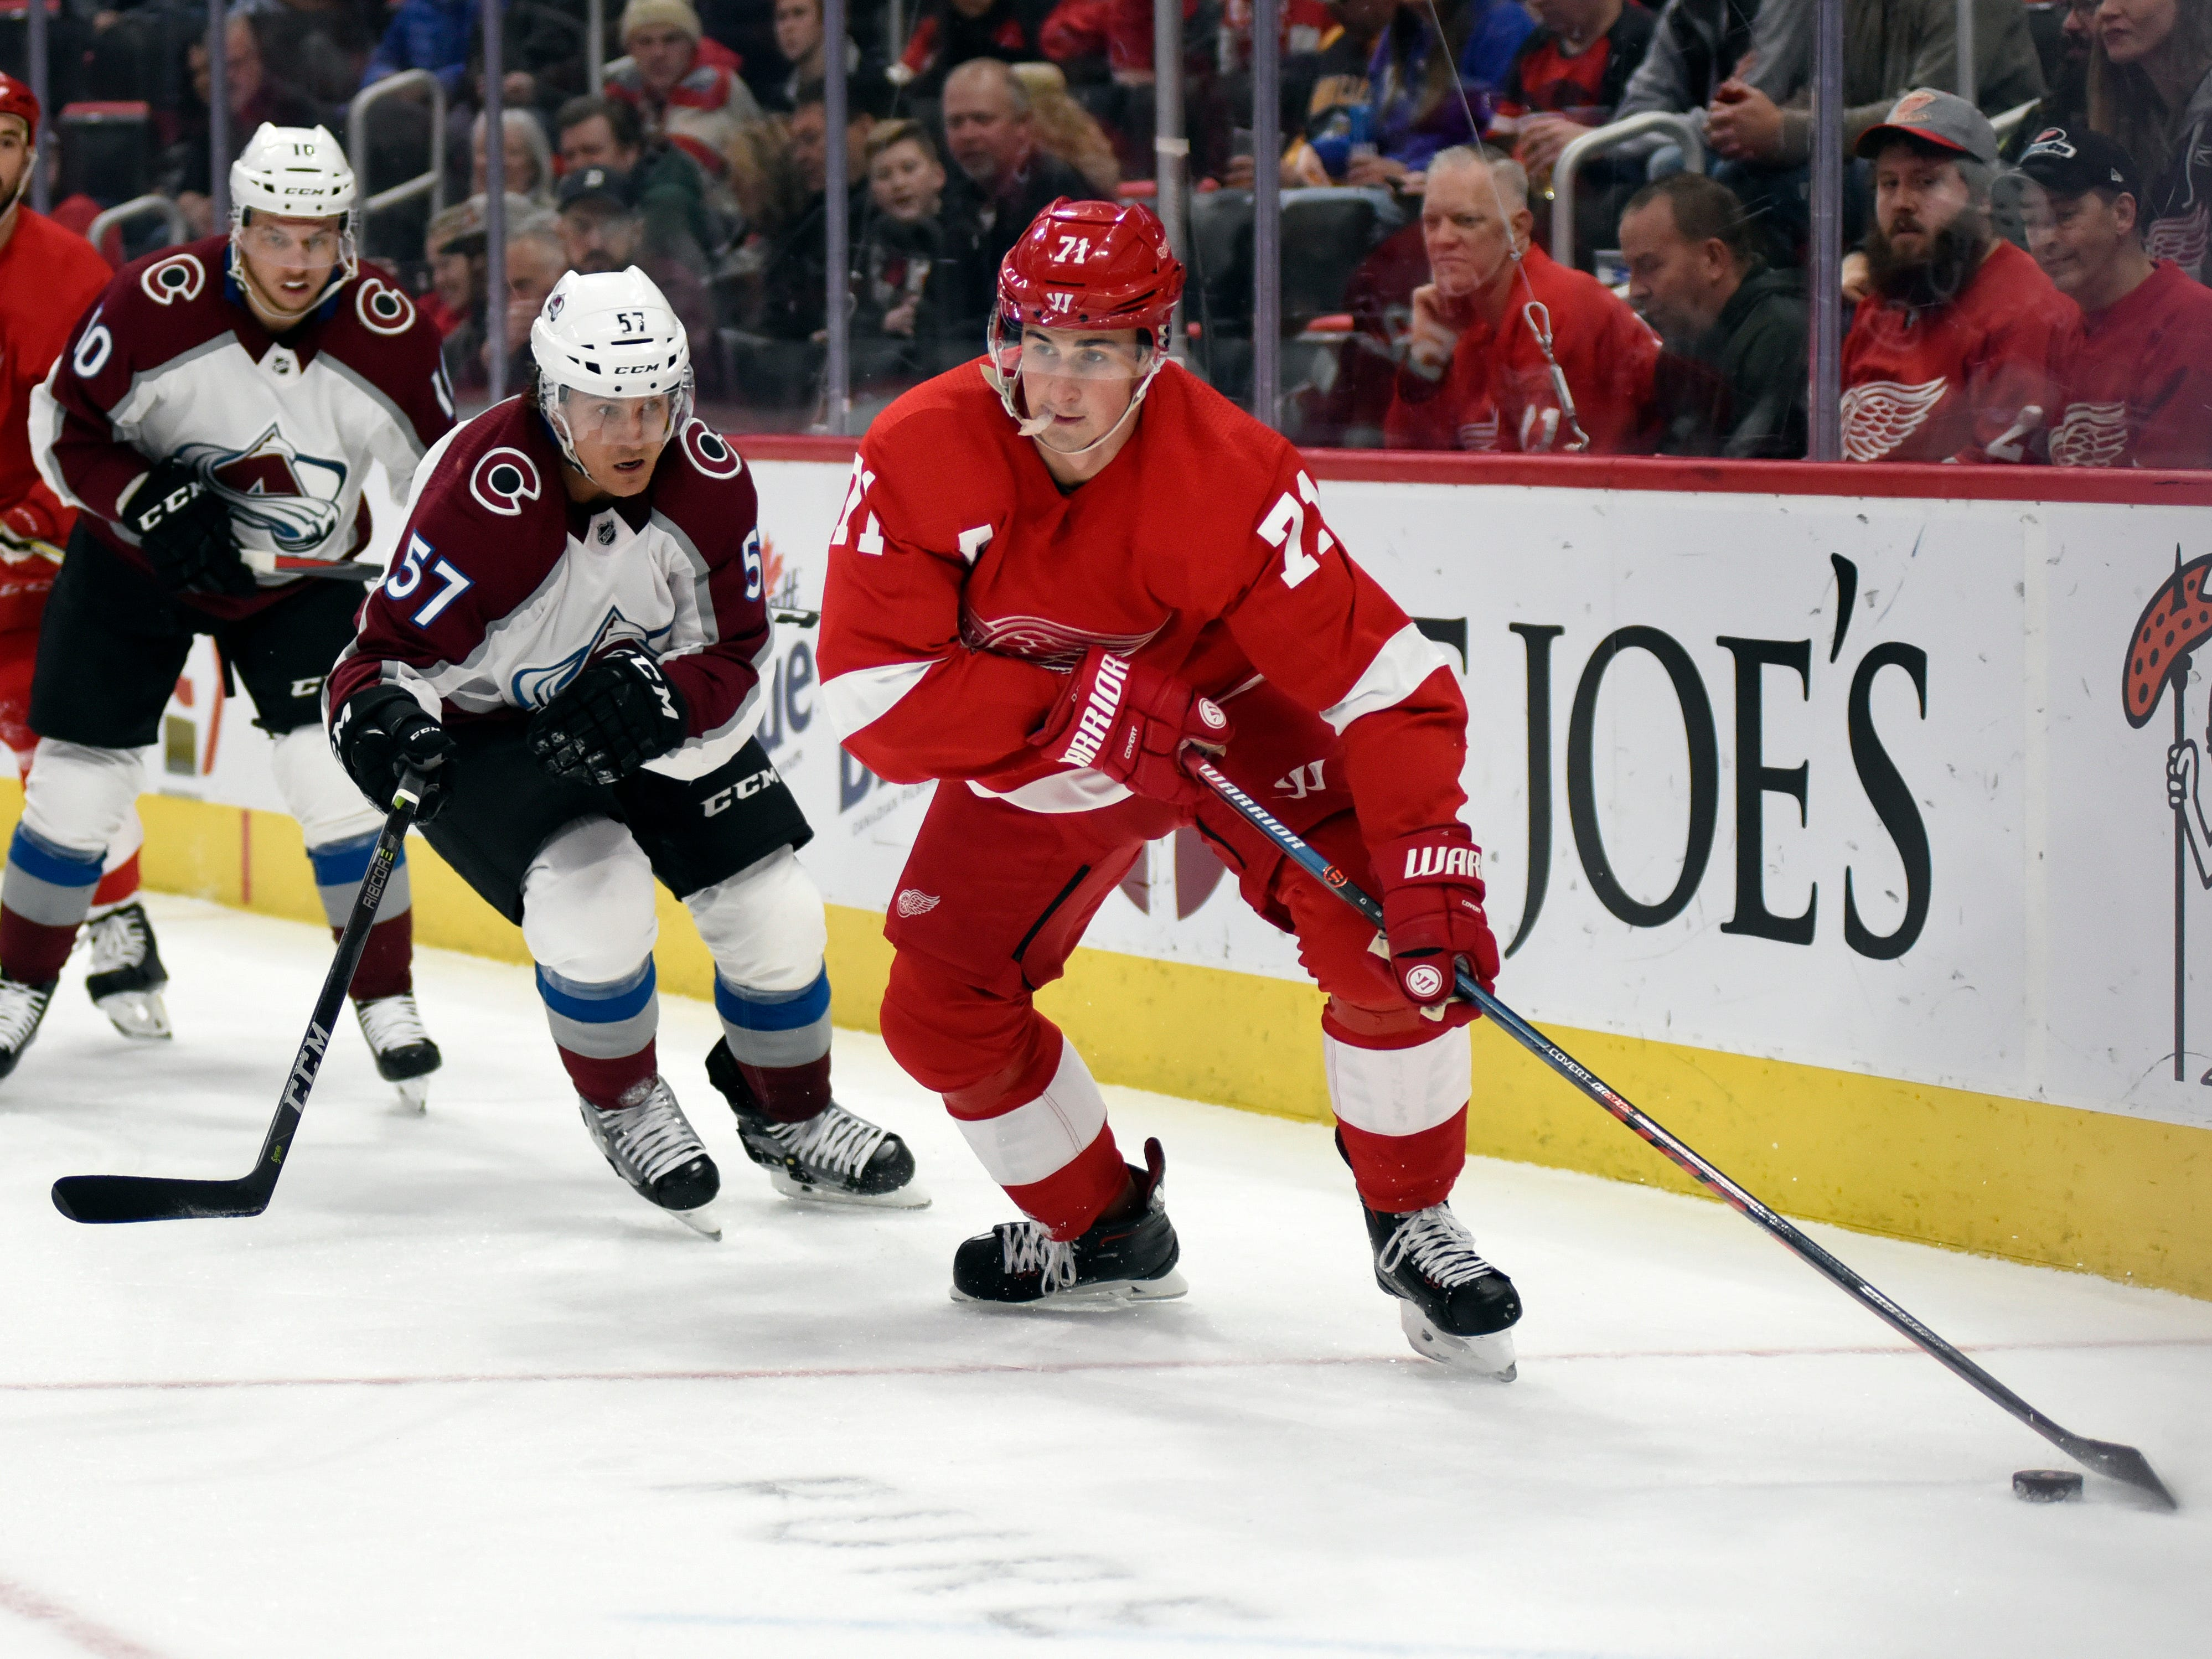 Detroit Red Wings center Dylan Larkin, right, moves the puck away from Colorado Avalanche left wing Gabriel Bourque in the first period of an NHL hockey game in Detroit, Sunday, Dec. 2, 2018.